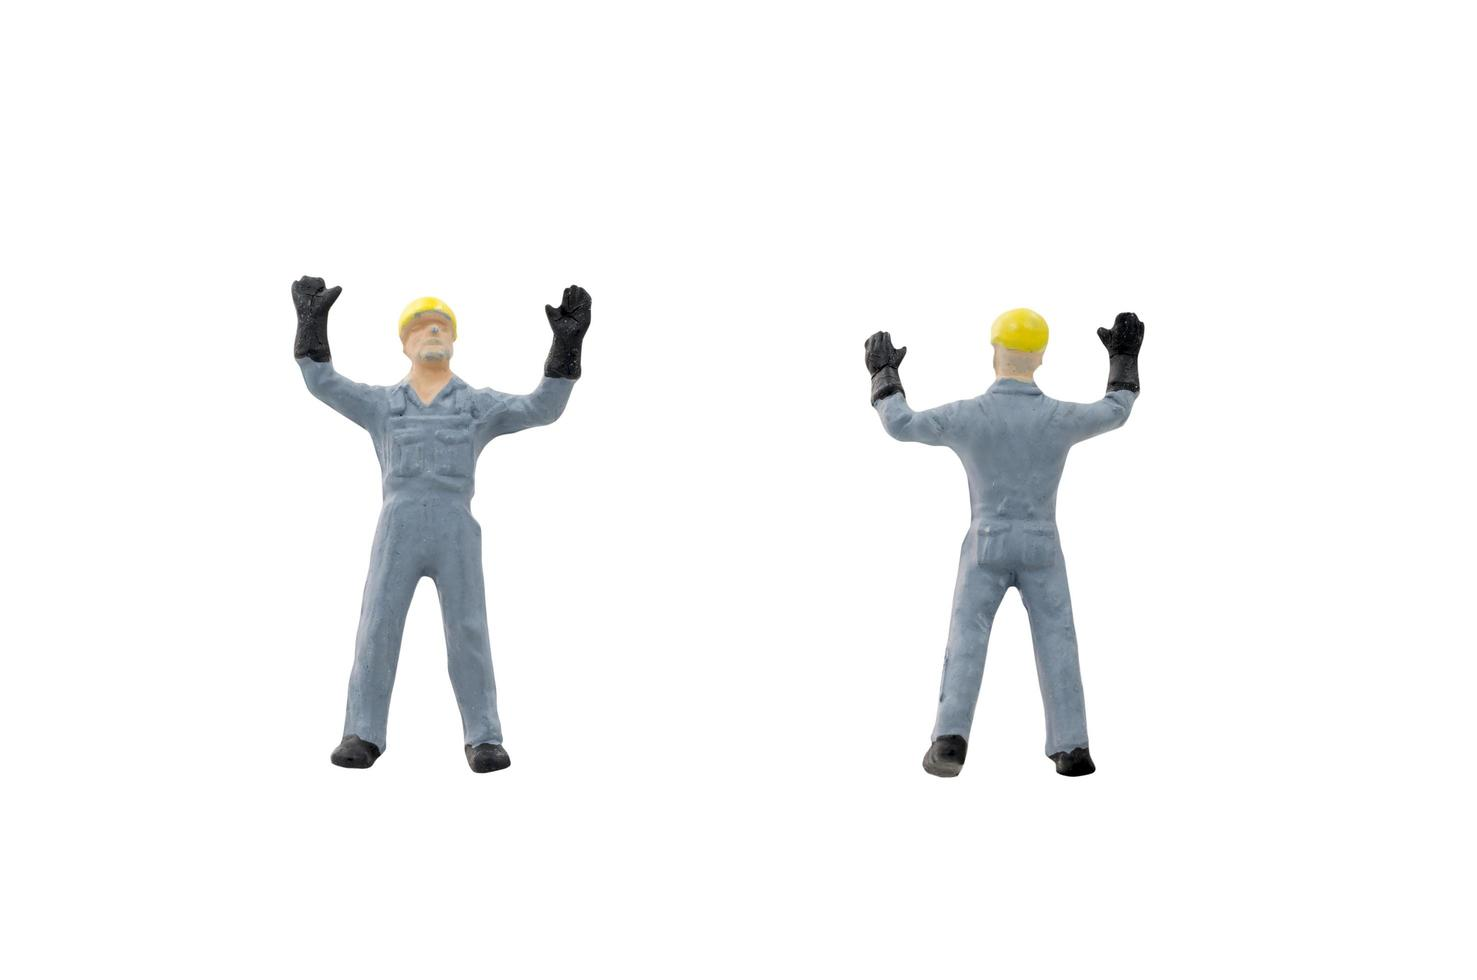 Miniature construction workers on a white background photo